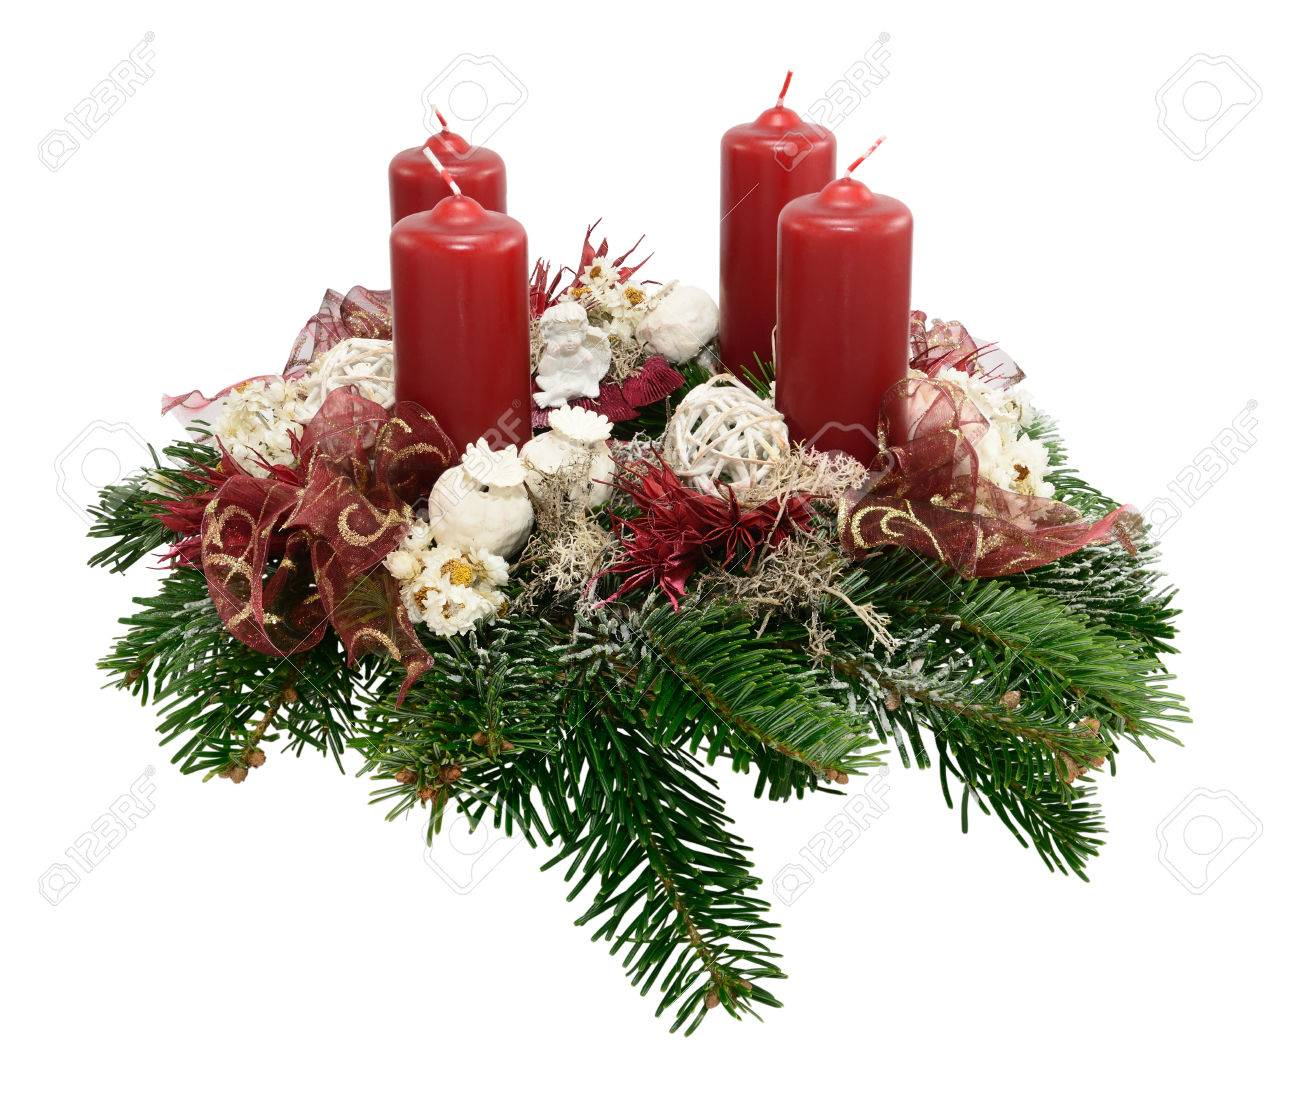 Kerzen Für Adventskranz Stock Photo